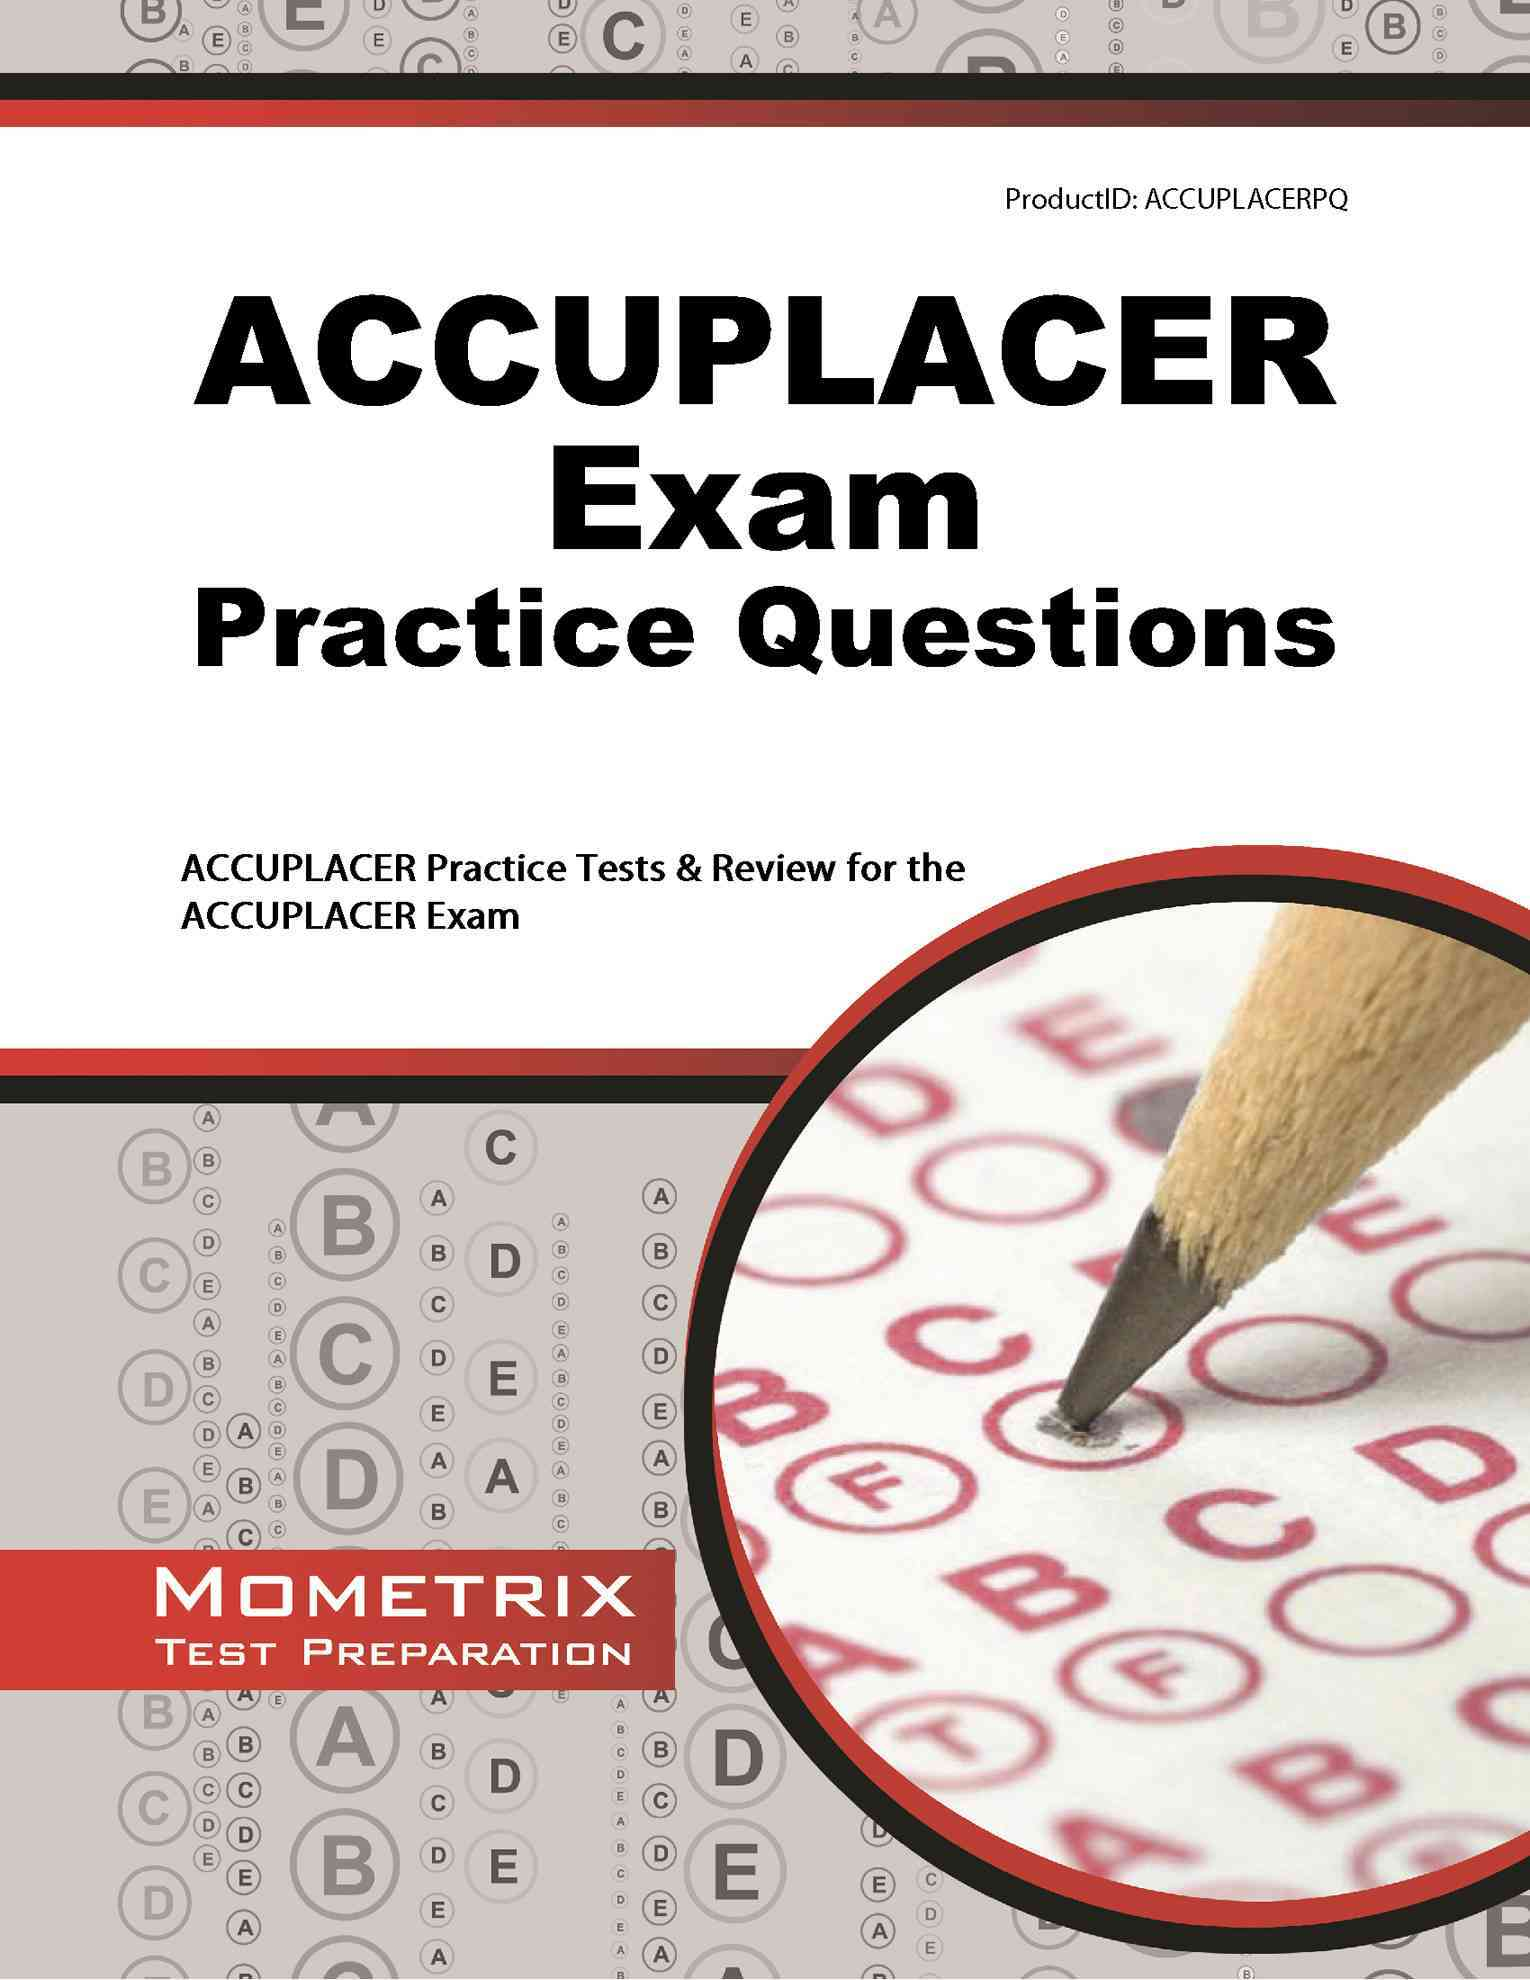 Accuplacer Exam Practice Questions By Accuplacer Exam Secrets Team (EDT)